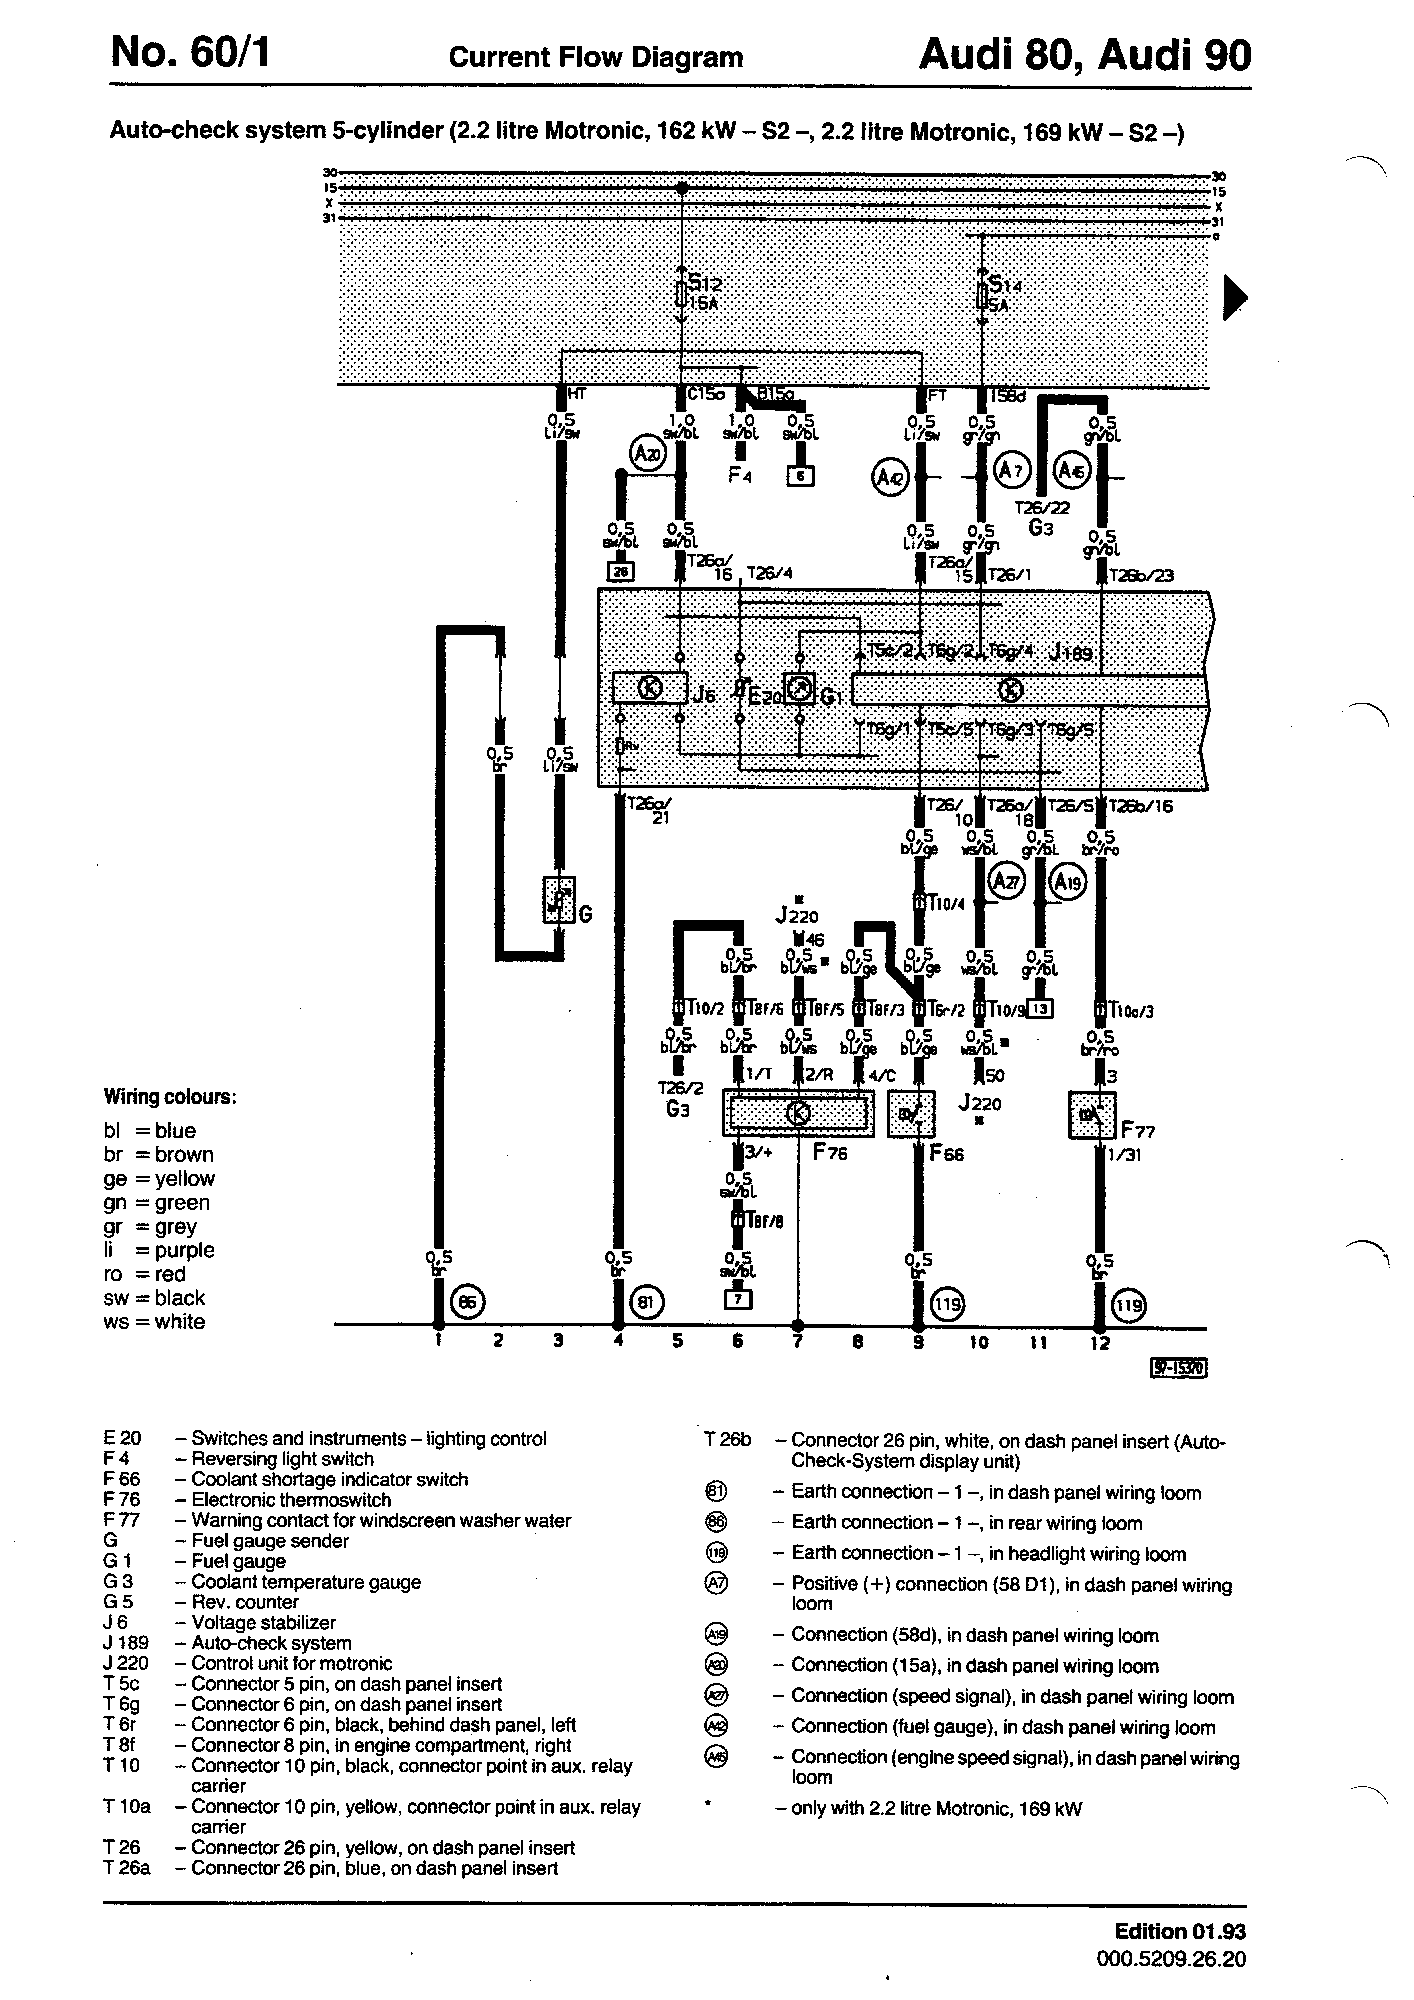 Wiring Diagrams Component Lookup Lighting Diagram Uk Switches And Instruments Control E20